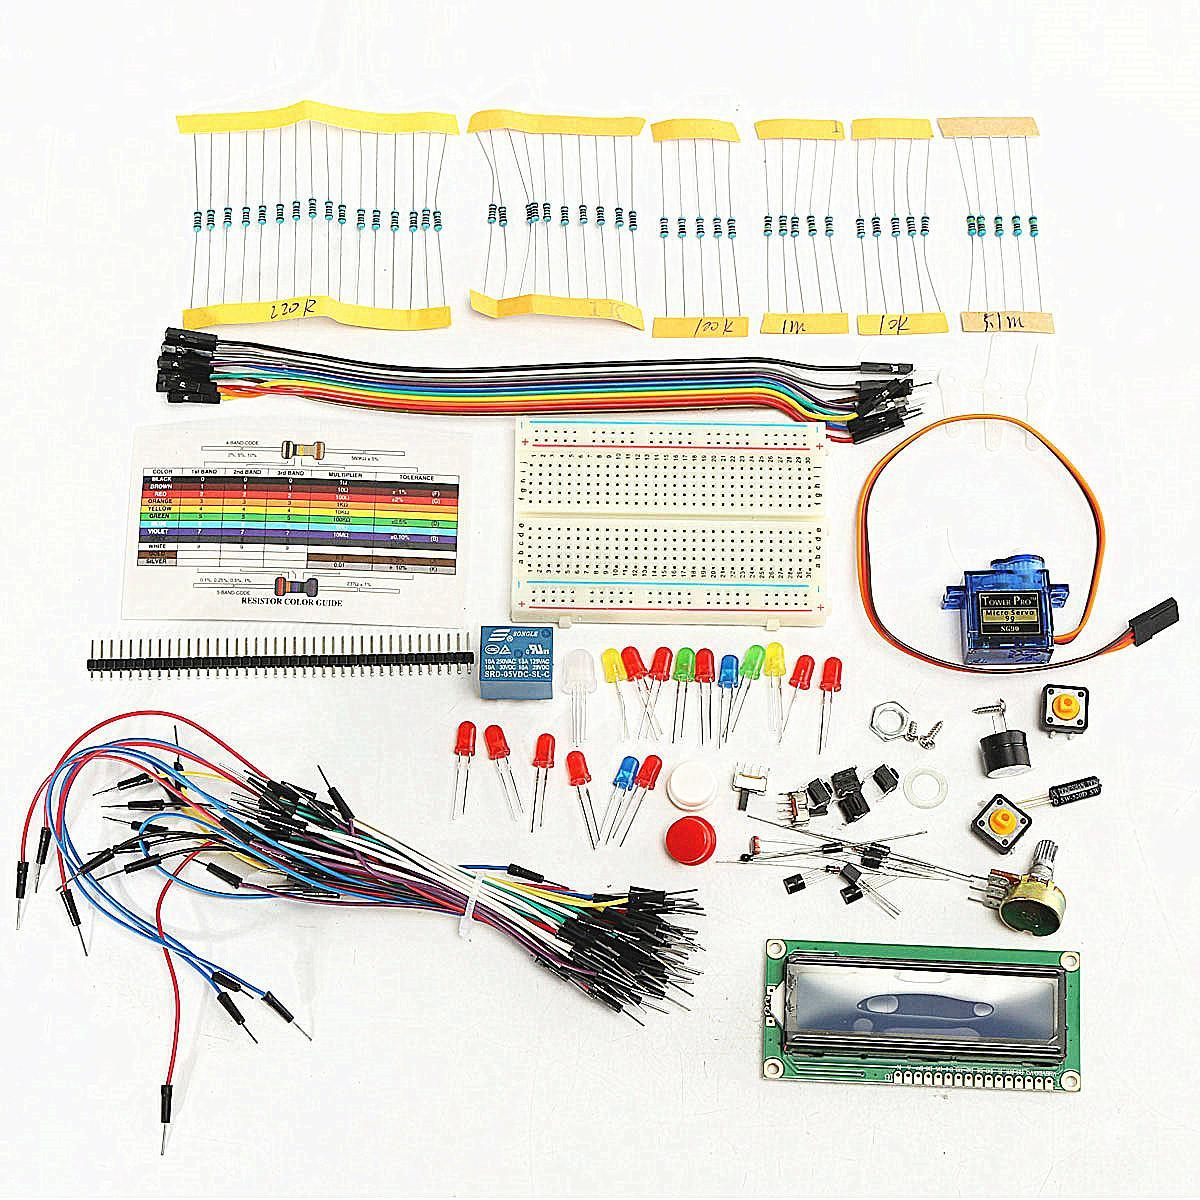 Project 1602 LCD Starter Kit For Arduino UNO R3 Mega 2560 Nano Servo LED PDF